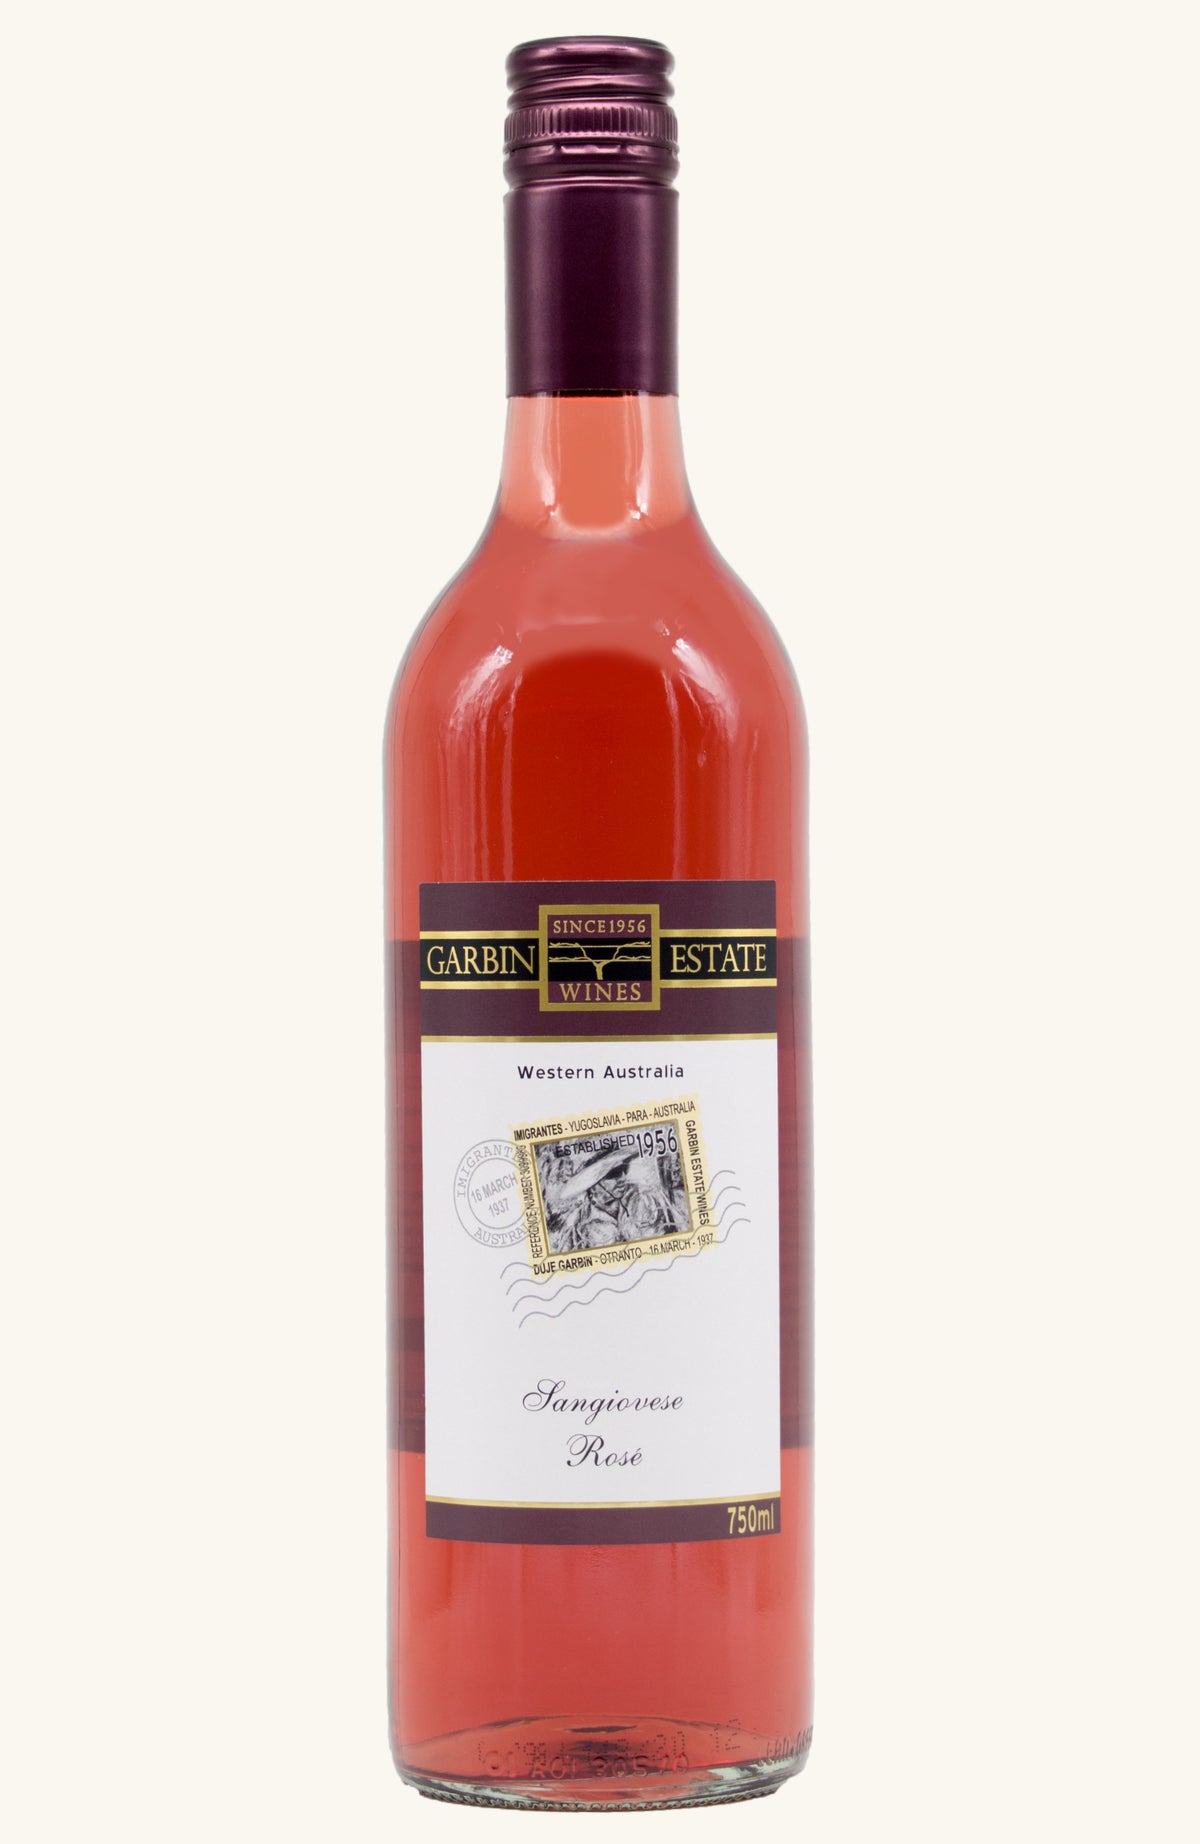 2020 Sangiovese Rose Garbin Estate Wines